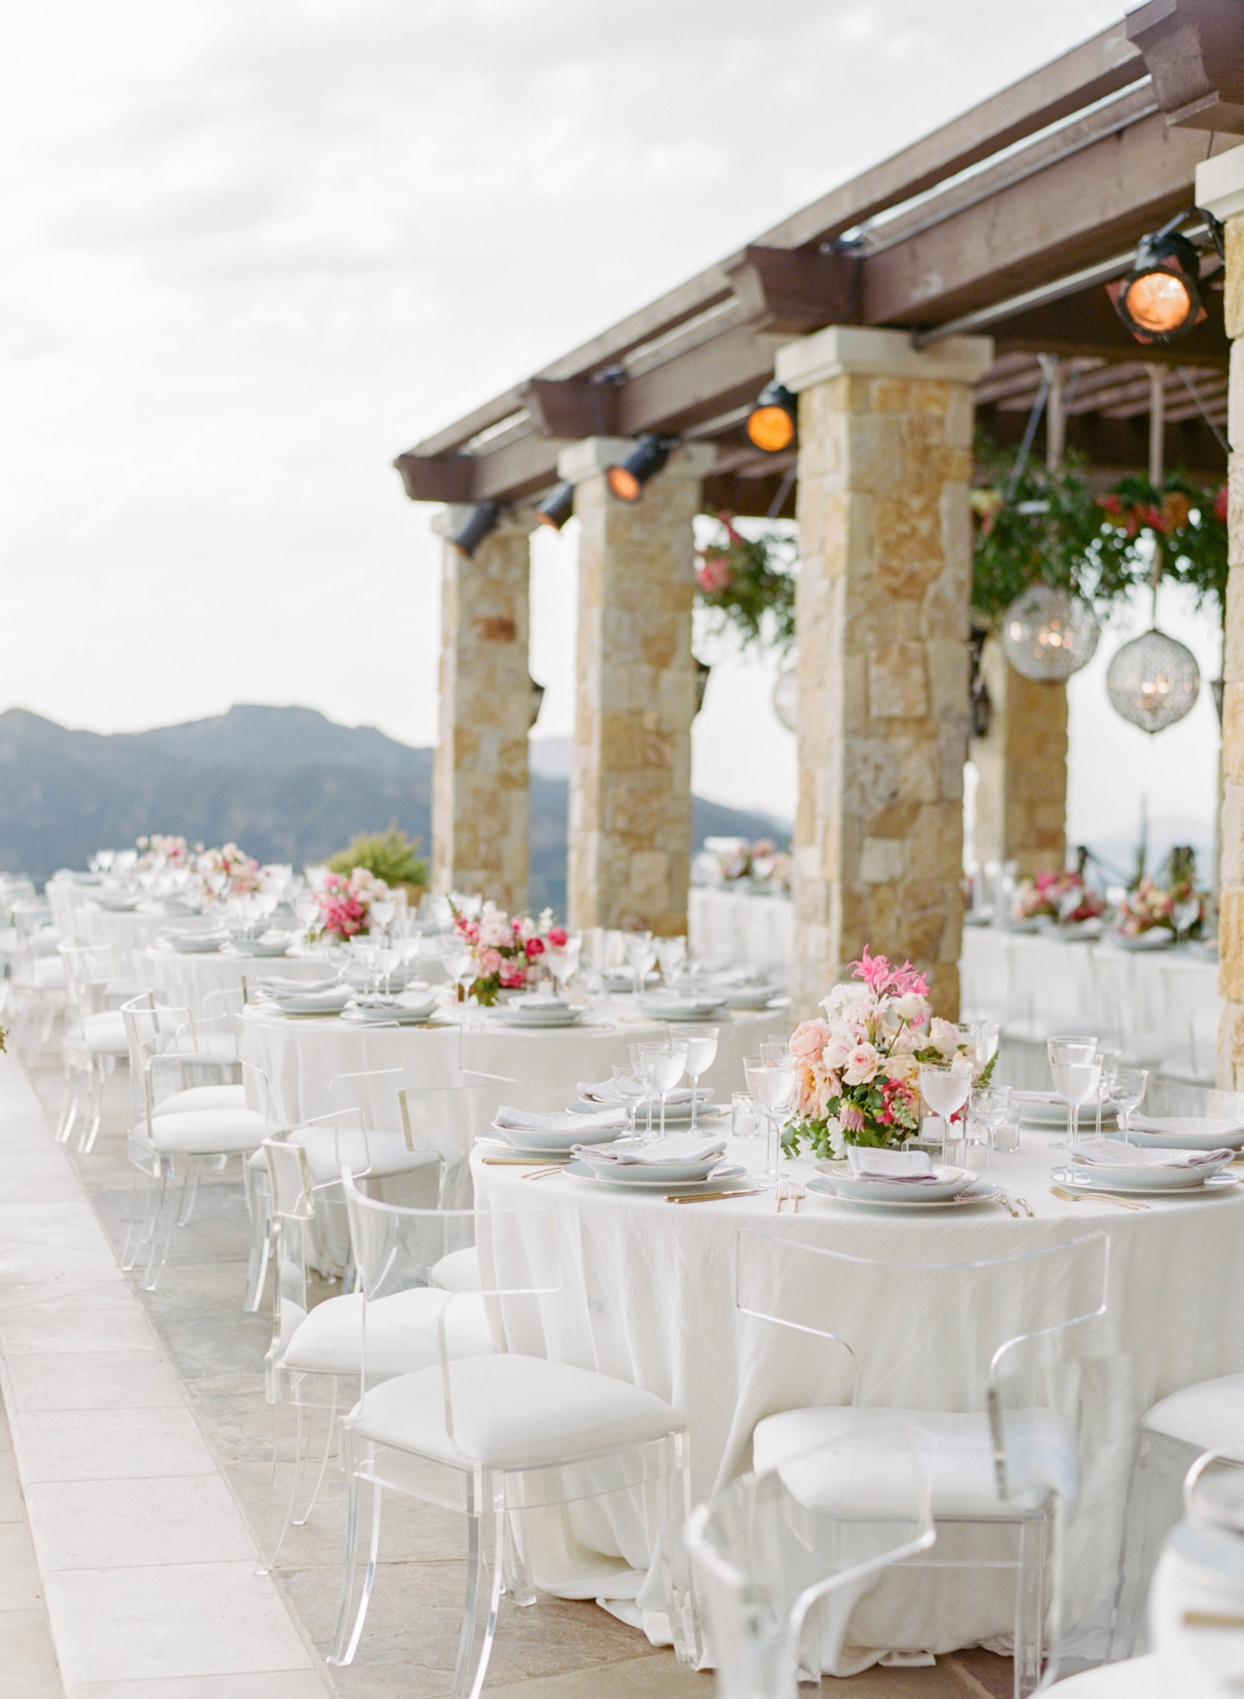 malibu rocky oaks, malibu wedding, rentals, party rentals, wedding rentals, martha stewart weddings